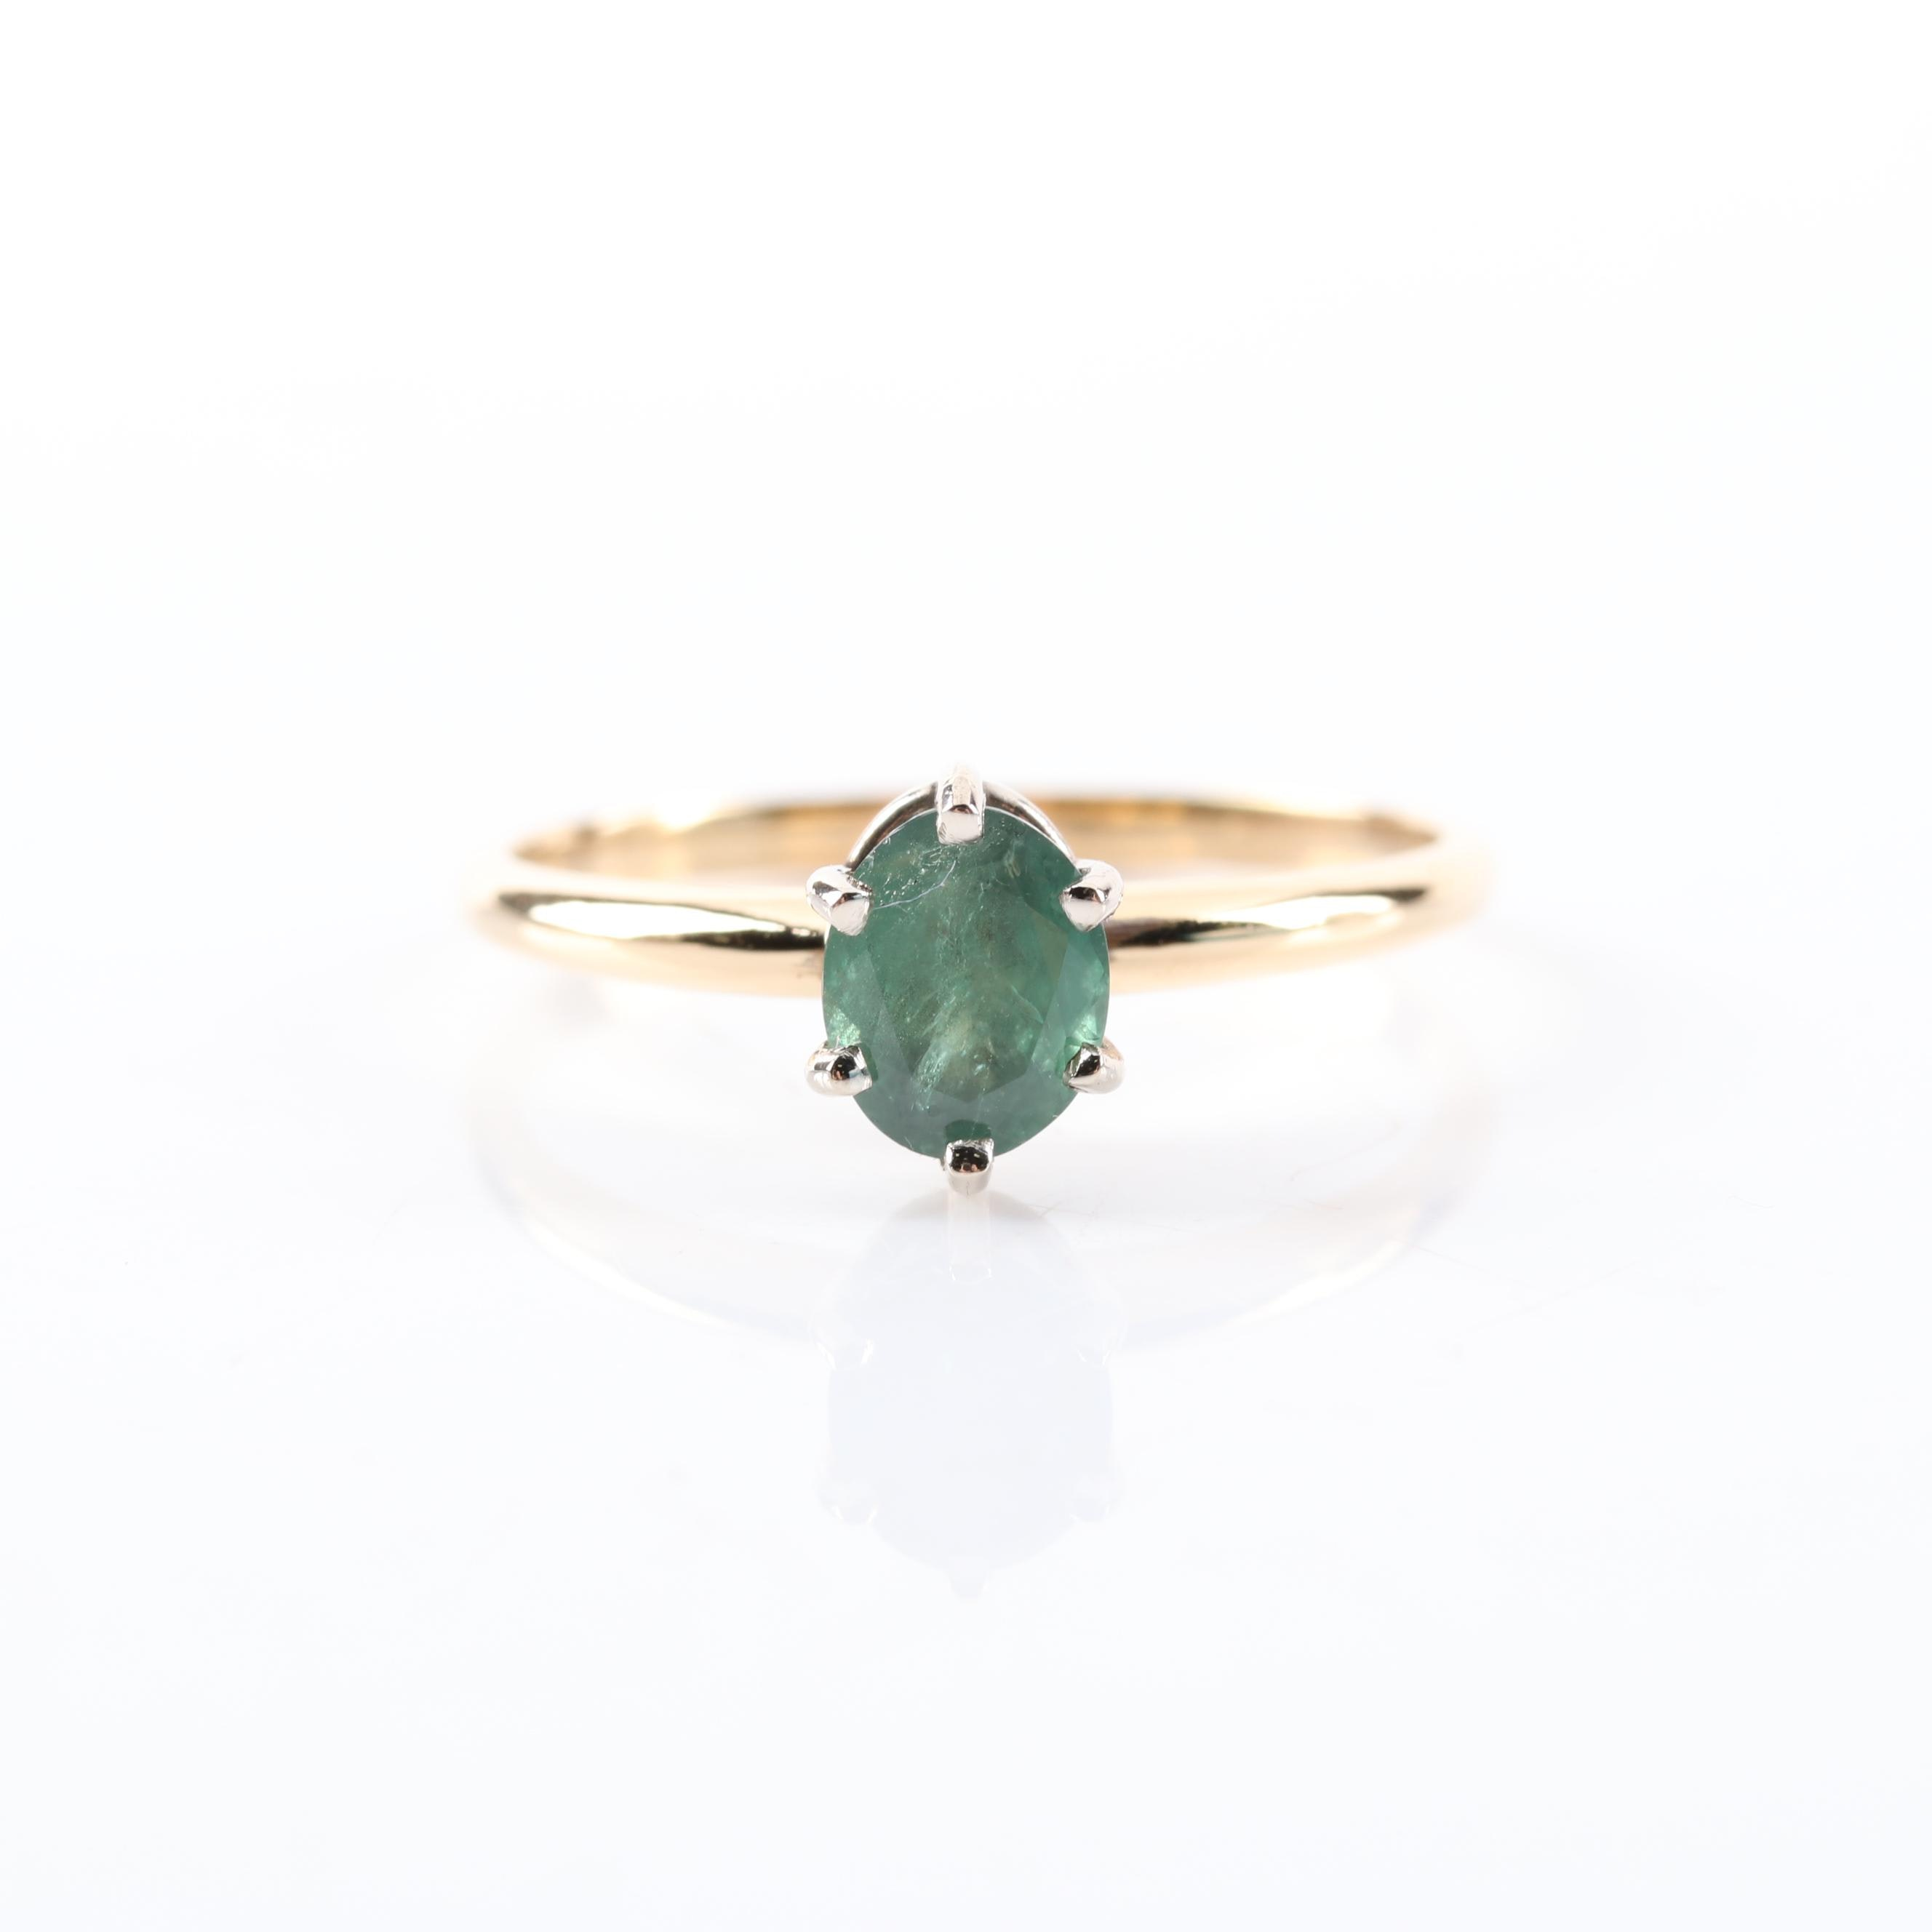 18K Yellow Gold 0.95 CT Natural Alexandrite Ring with GIA Report